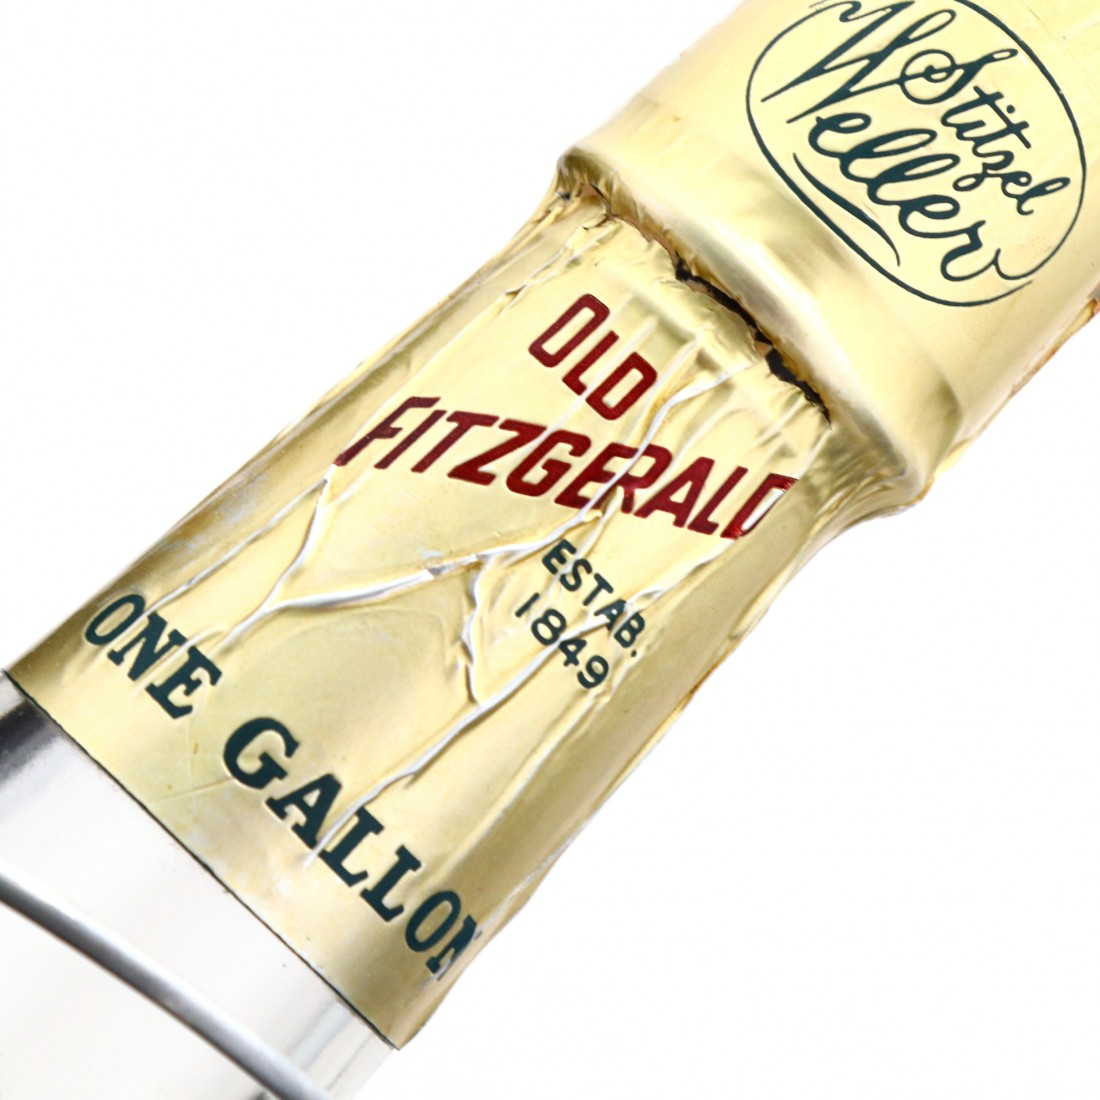 Very Old Fitzgerald 1960 Bottled in Bond 6 Year Old 100 Proof Gallon with Cradle / Stitzel-Weller